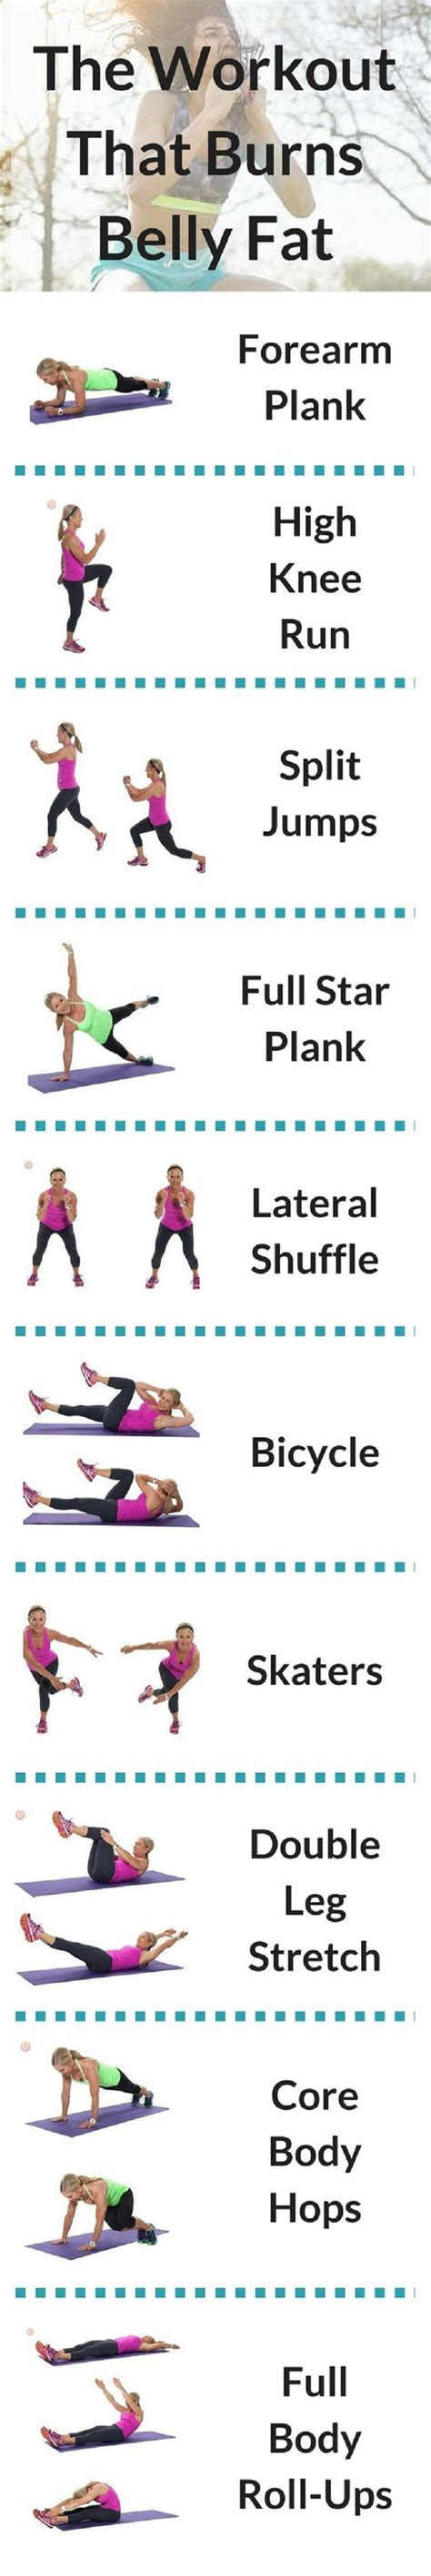 10 Best Flat Belly Tips, Tricks and Infographics   Flair ...